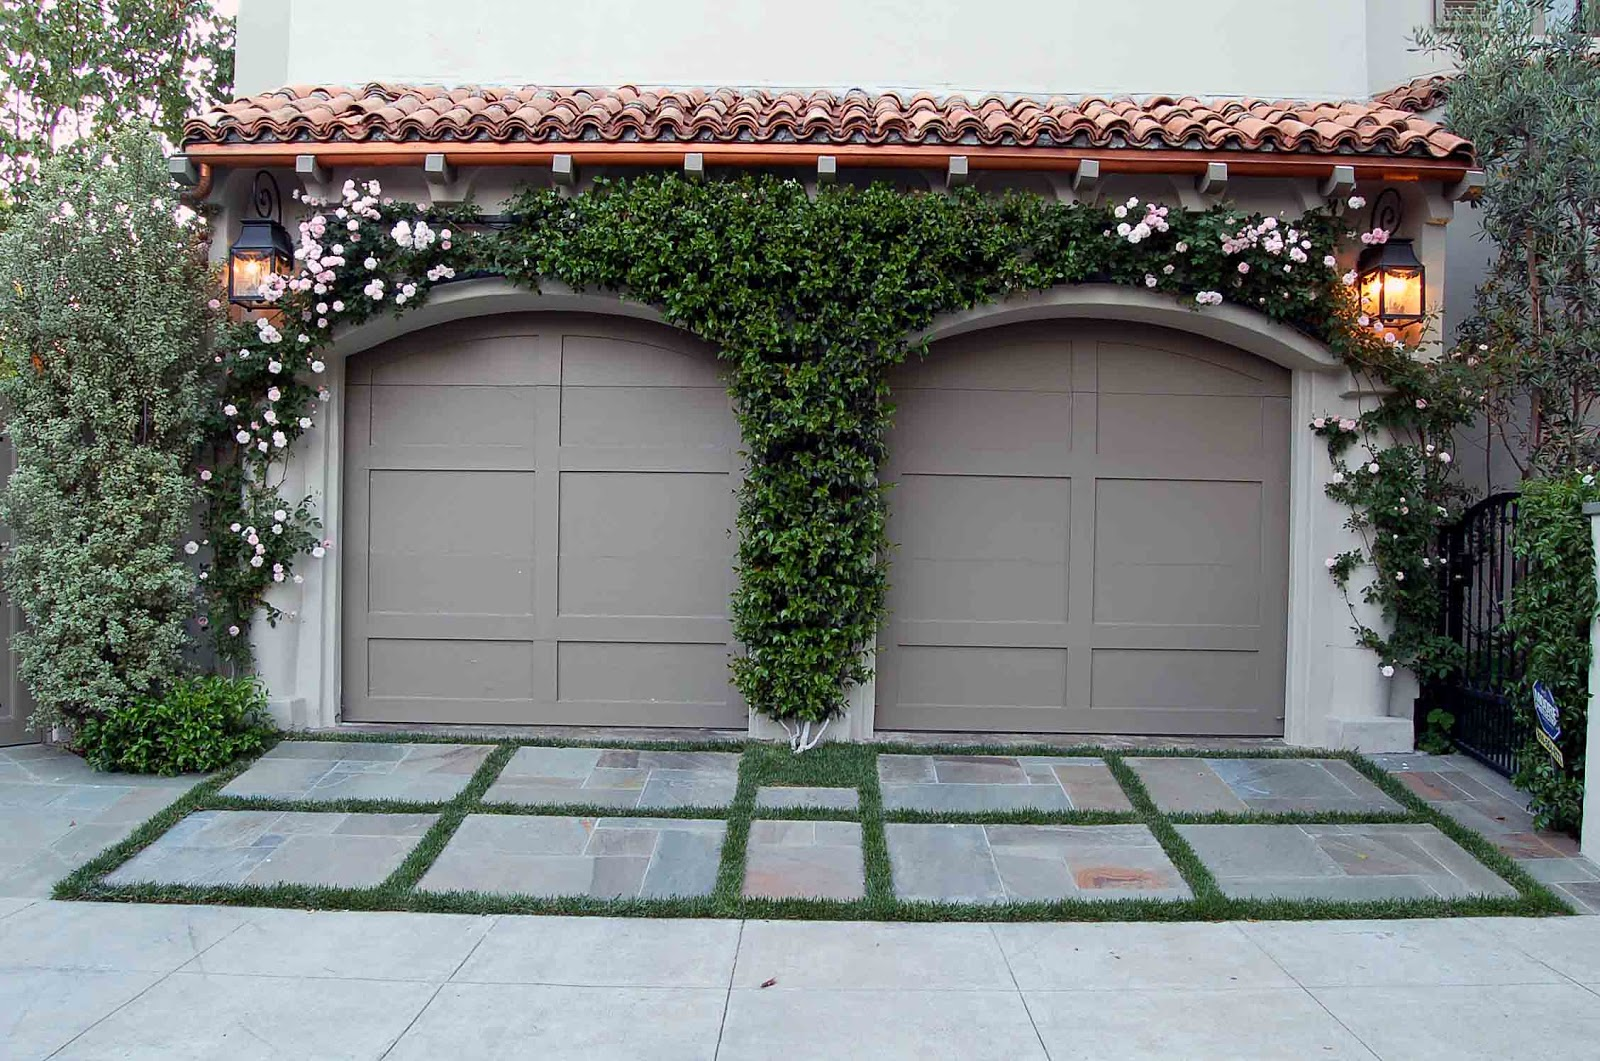 1061 #6A433B Other Plant Choices Of Noteare The Flowering Vine Over The Garage  picture/photo Millennium Garage Doors 36191600